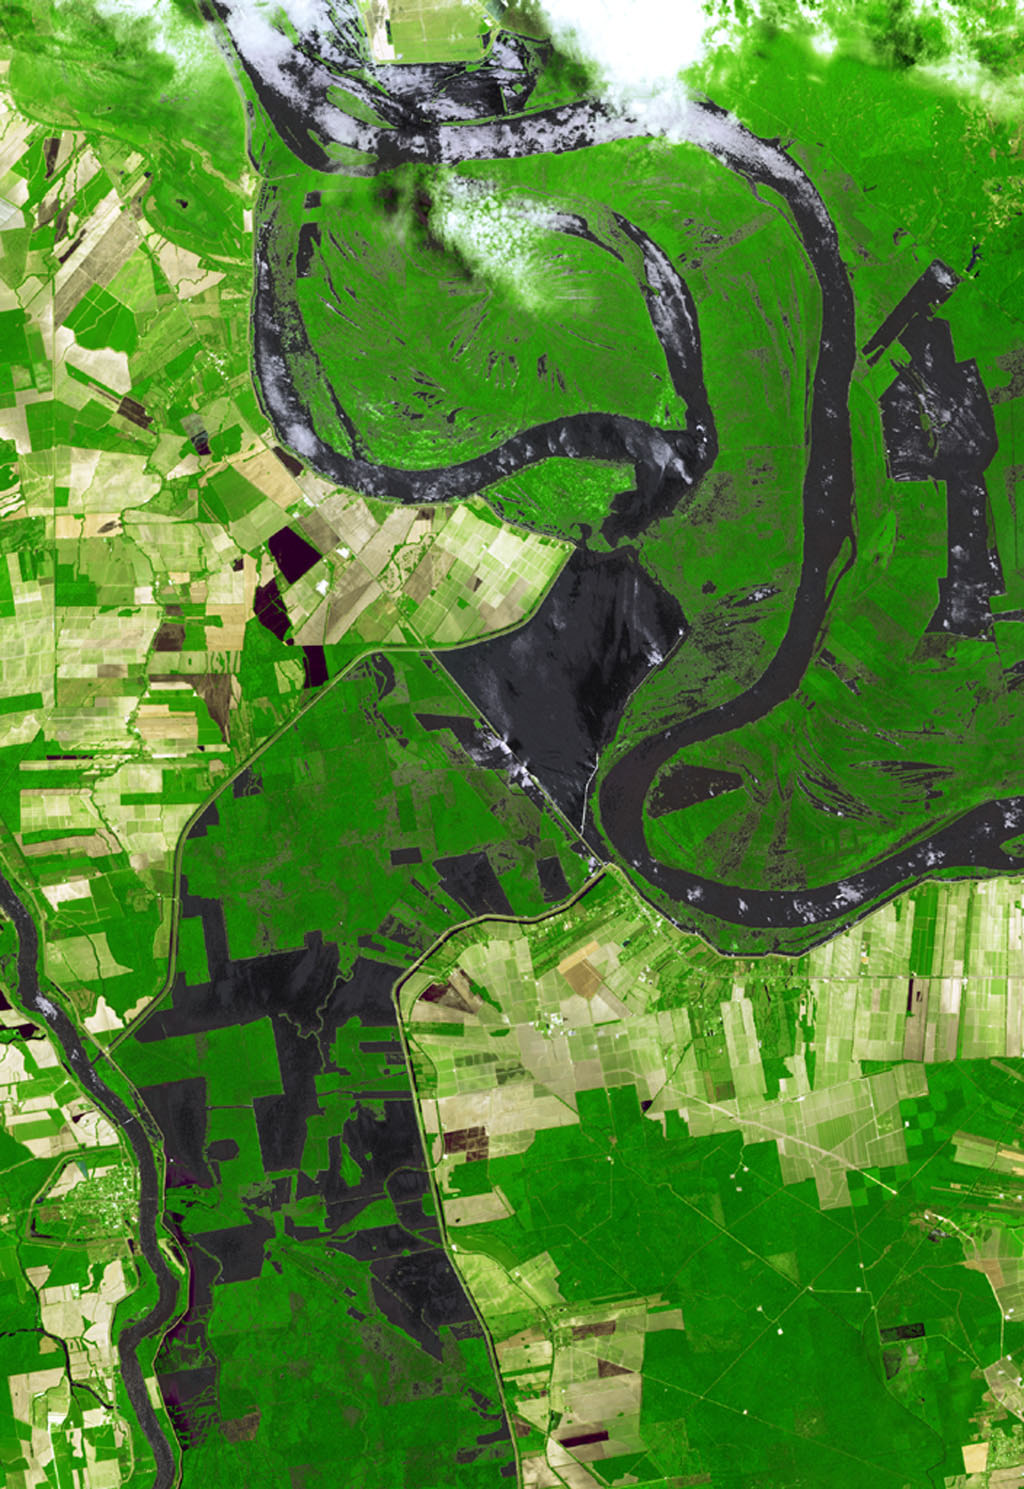 NASA's Terra spacecraft shows the water flow after the U.S. Army Corps of Engineers opened the Morganza Spillway, a flood control structure along the western bank of the Mississippi River in Louisiana, to ease flooding along levee systems on May 14, 2011.